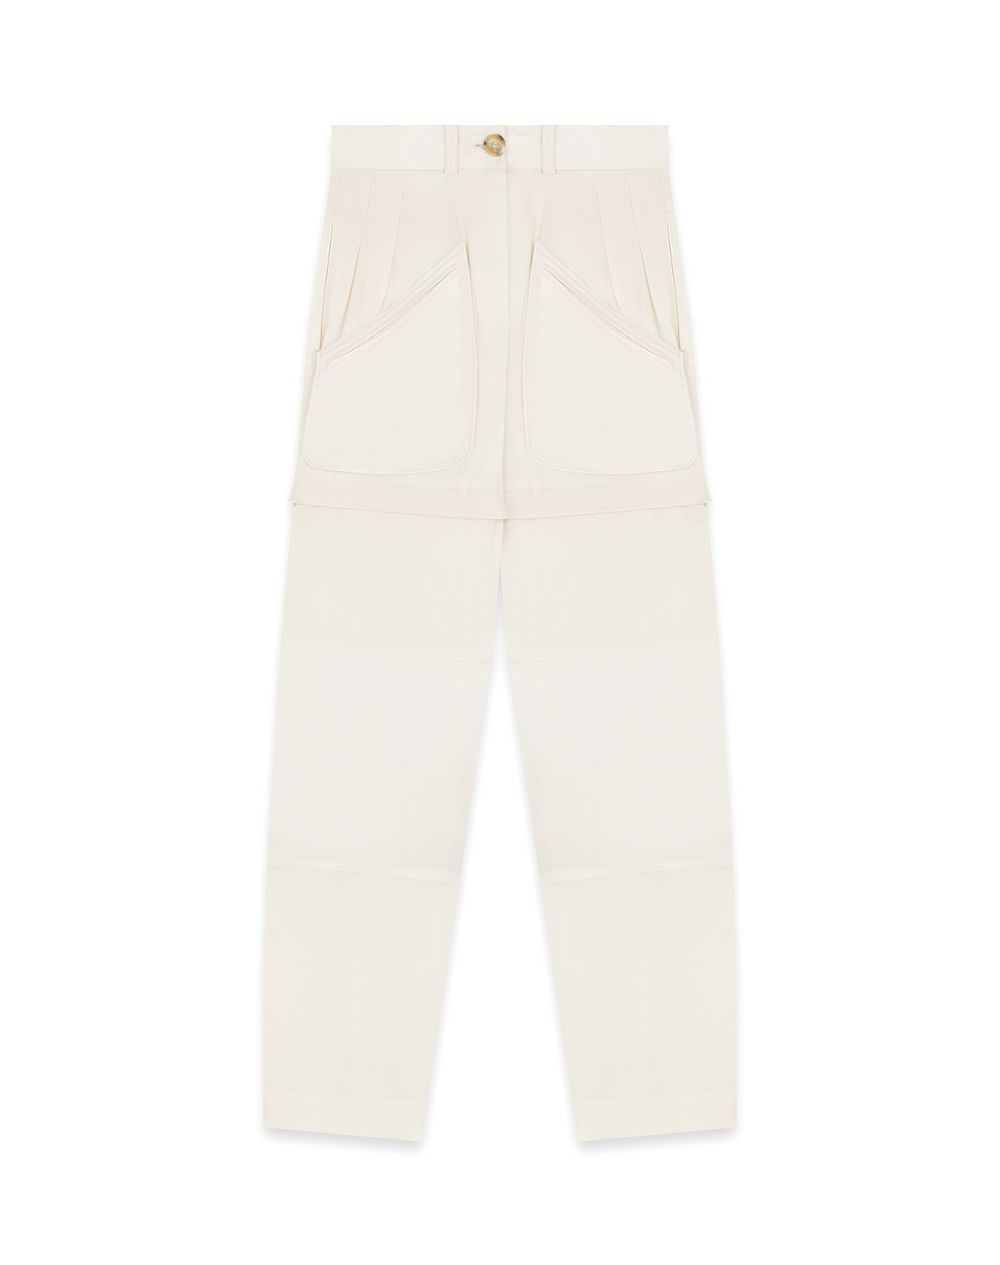 SILK TAPERED TROUSERS - Lanvin